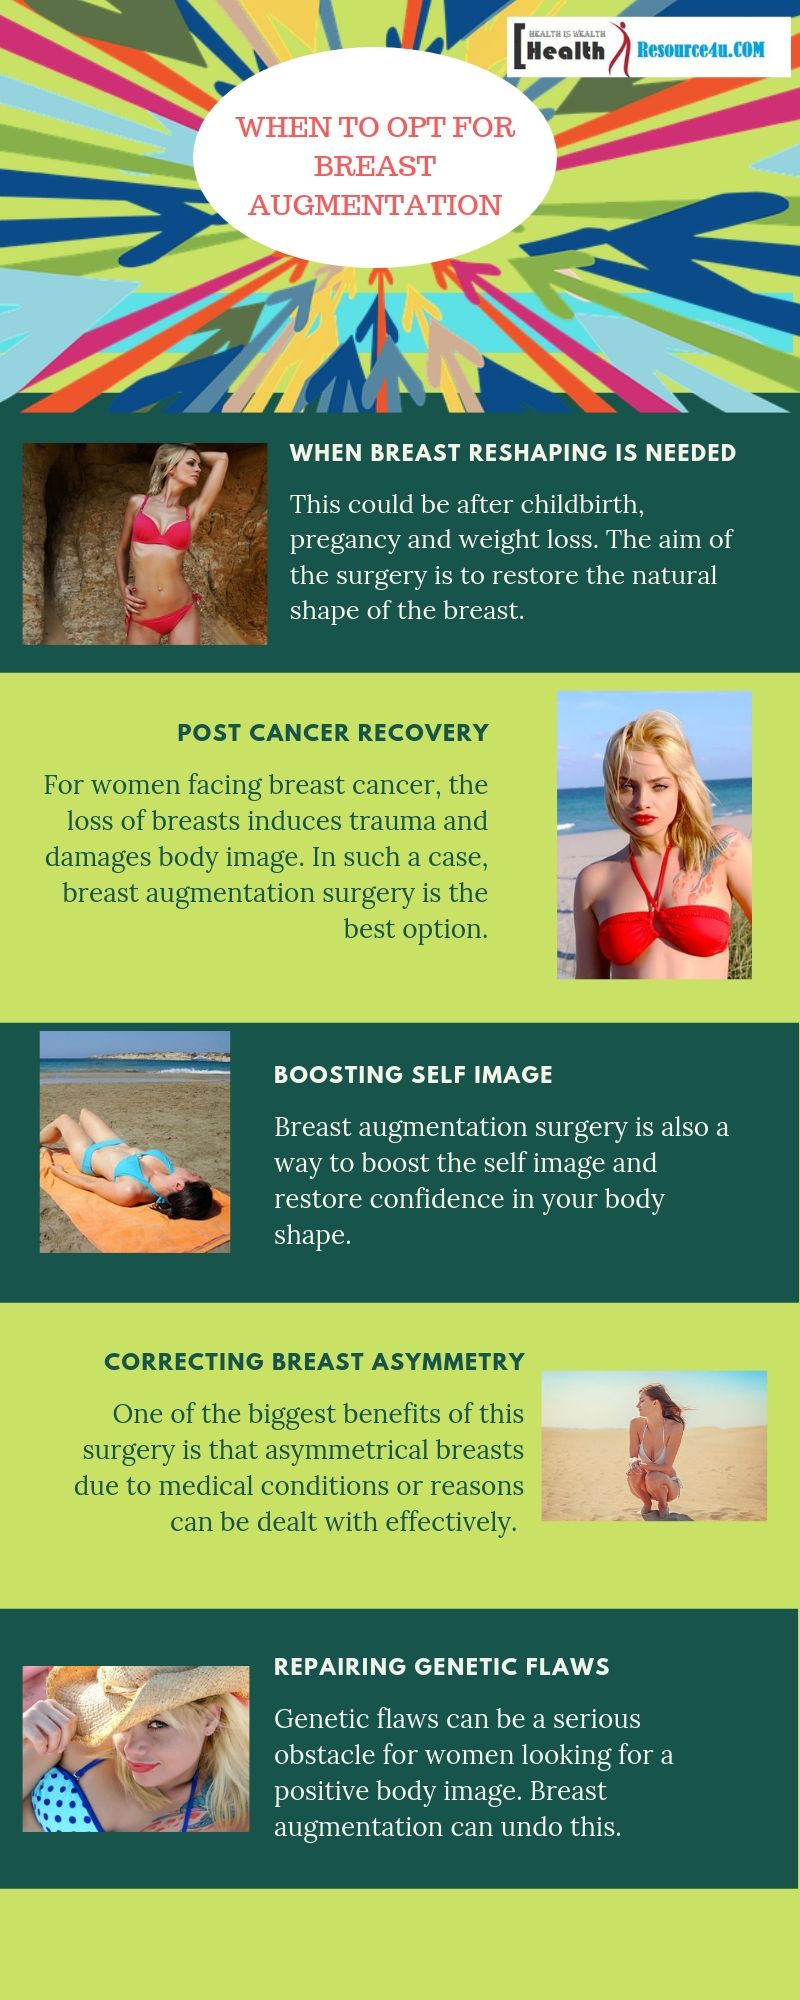 When to opt for breast augmentation